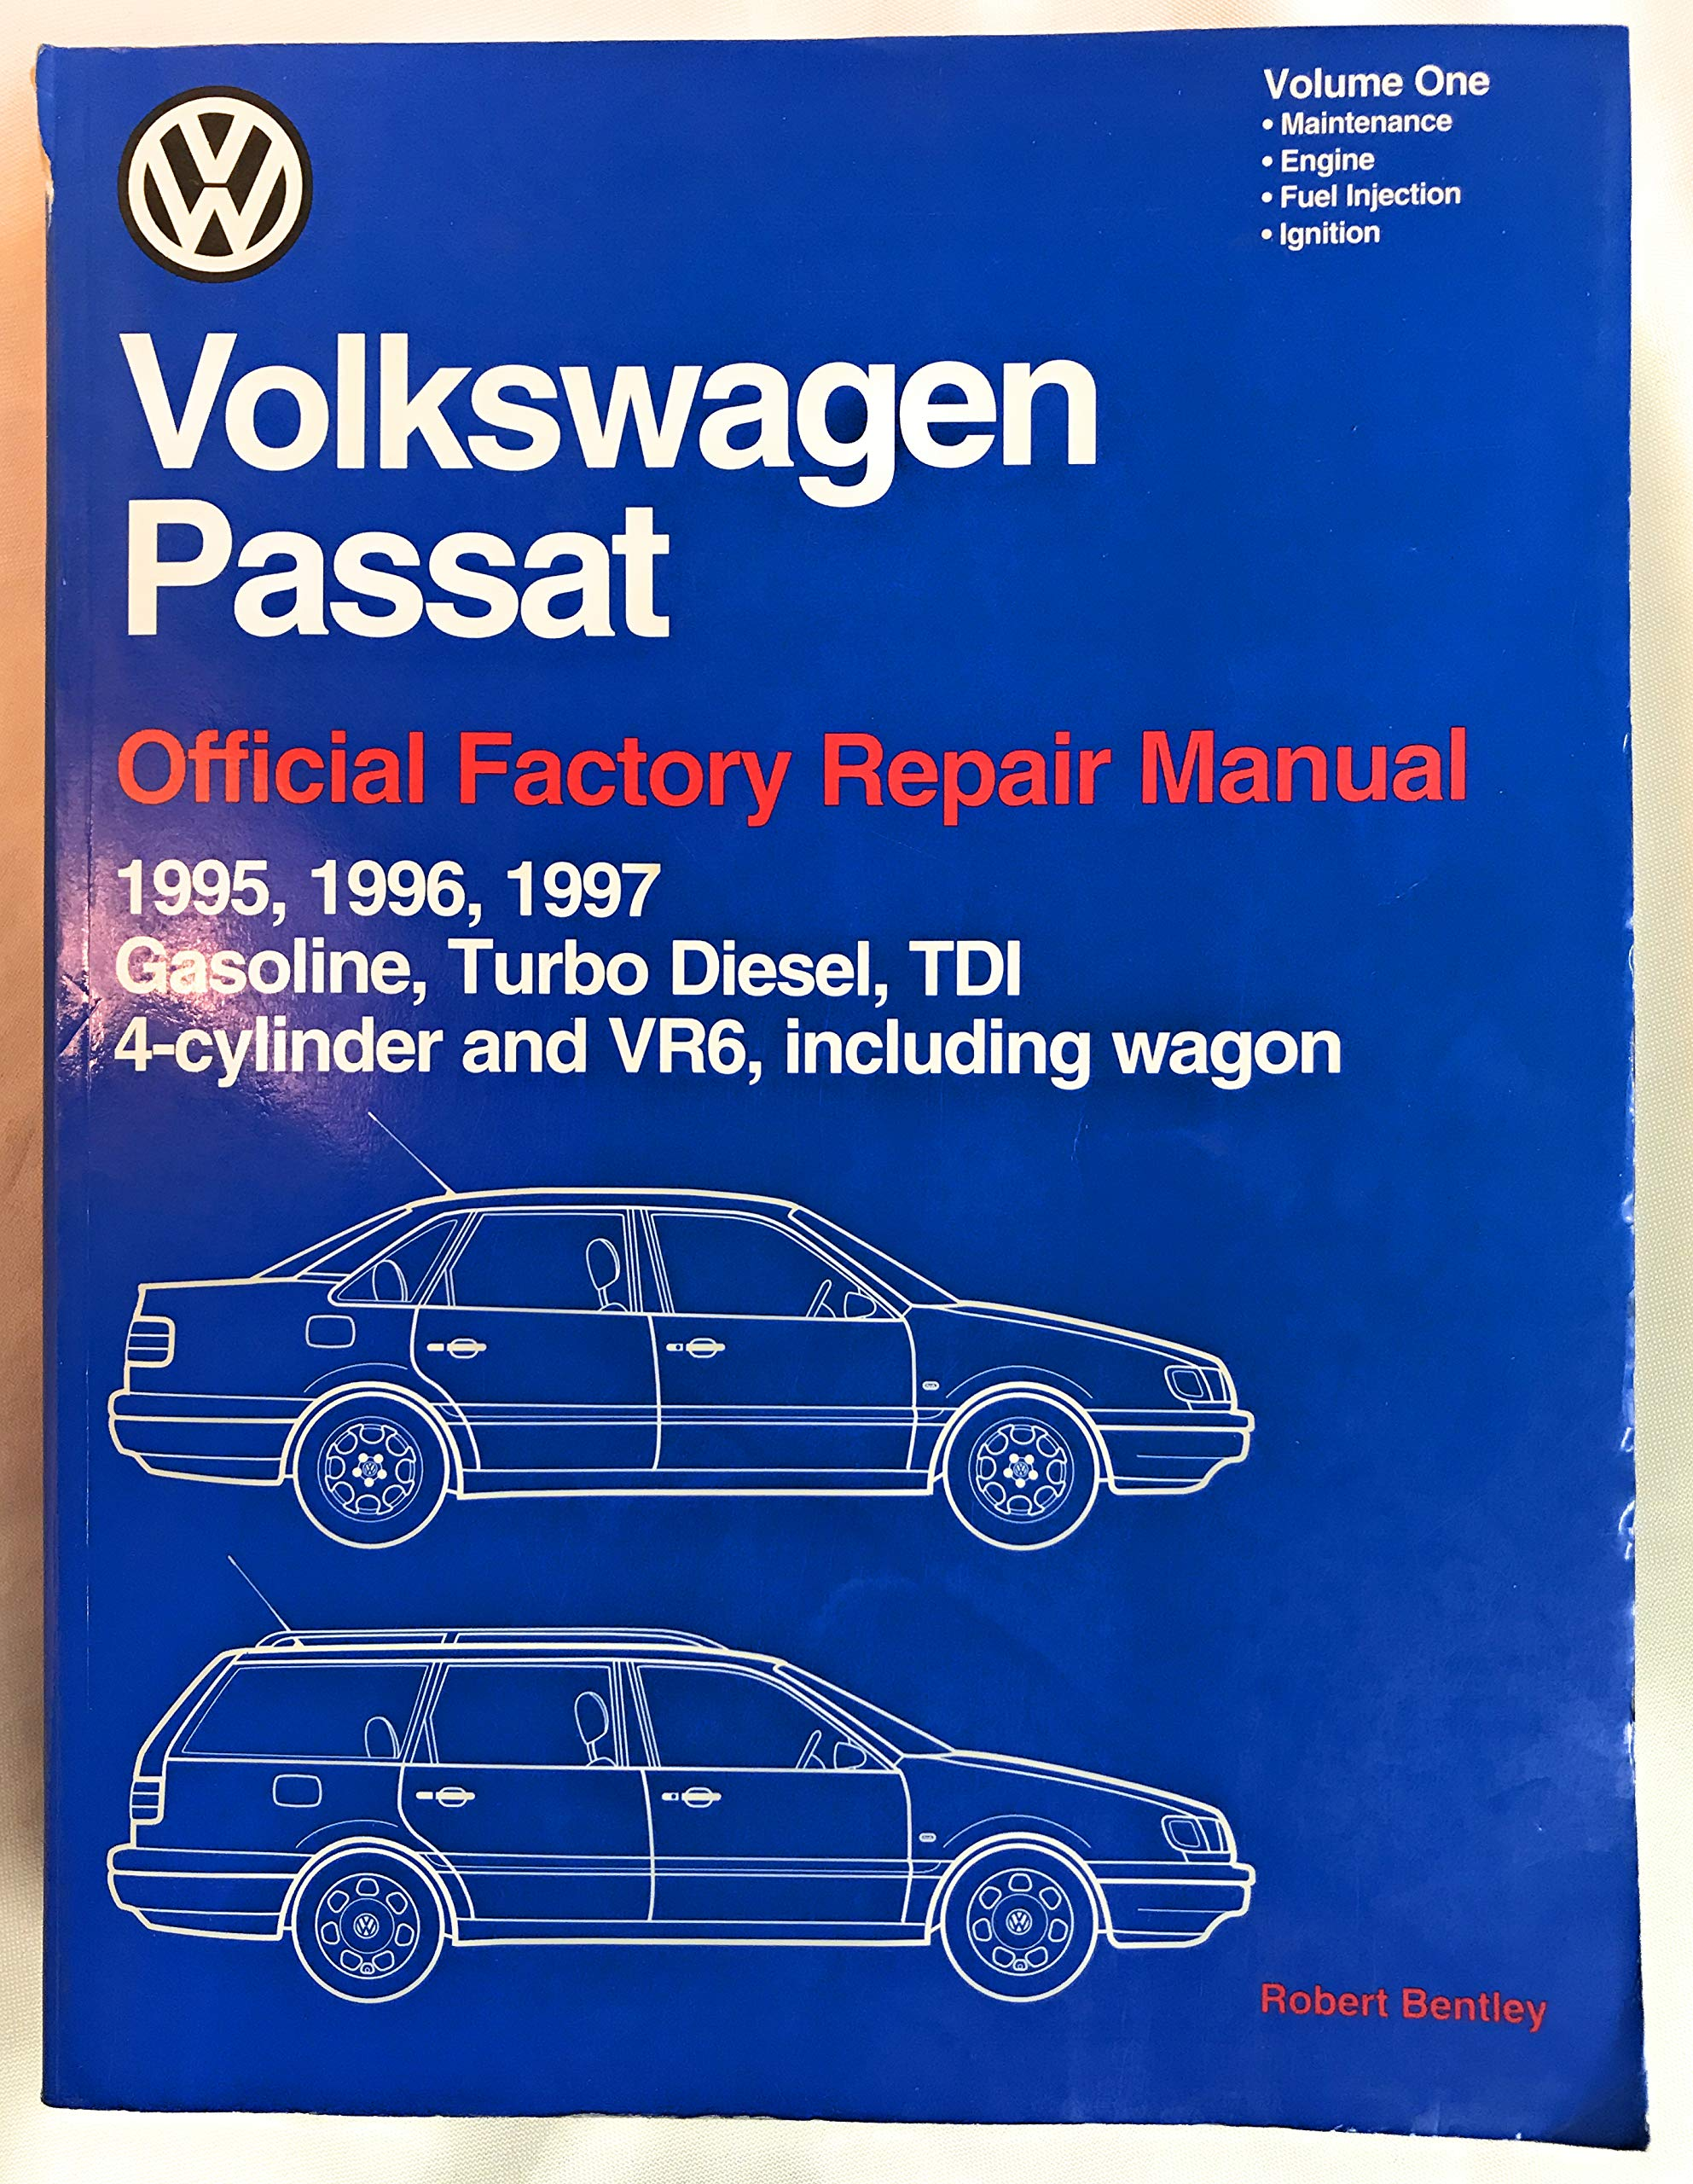 Volkswagen Passat (Volume 1) Official Factory Repair Manual, 1995-1997. Gasoline, Turbo Diesel, TDI, 4-Cylinder and VR6, Including Wagon Paperback – 1997